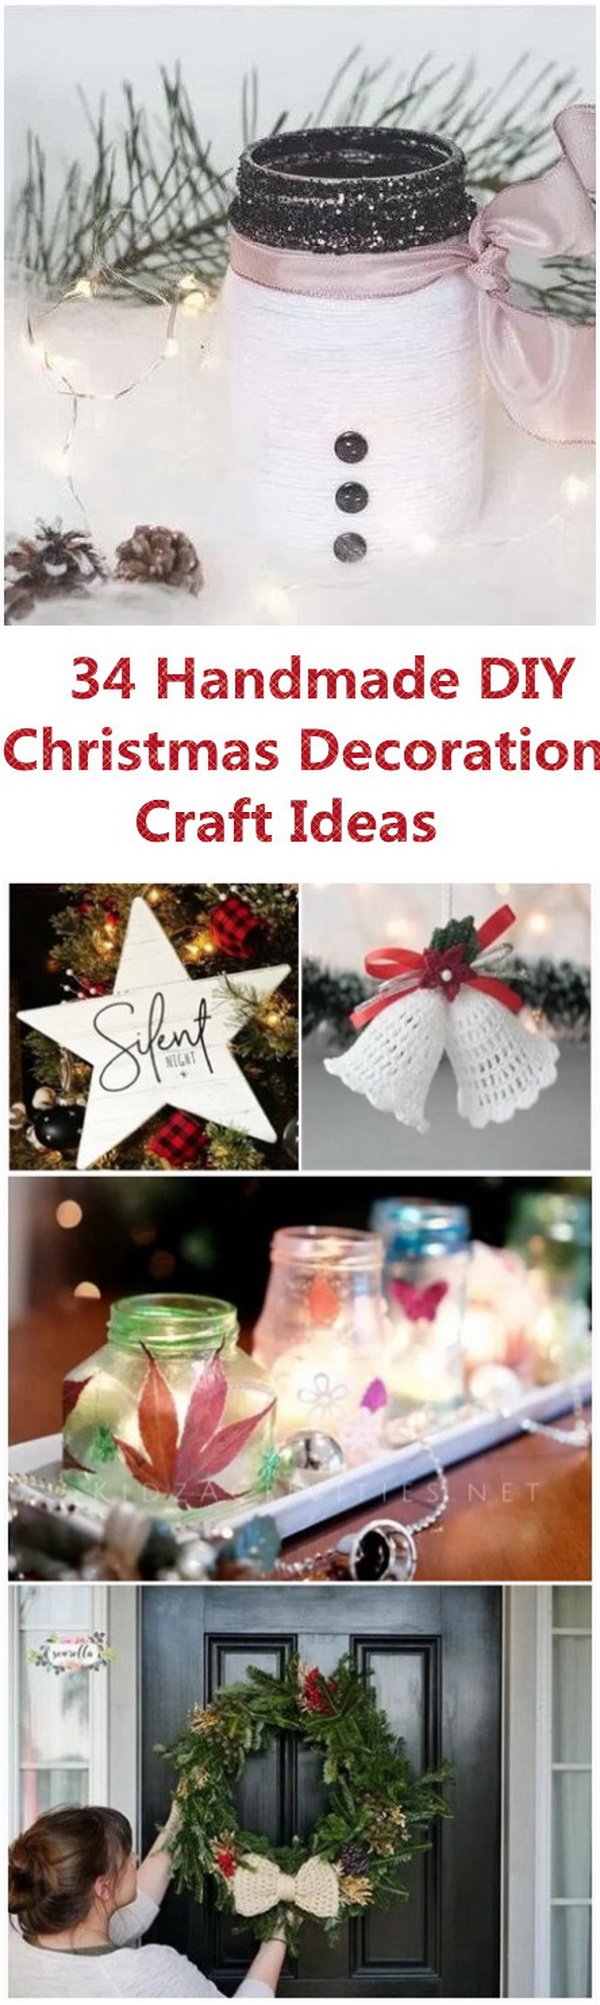 34 Easy Handmade DIY Christmas Decoration Craft Ideas. December is almost here! it is the right time for Christmas gifts and decorations of the year! Browse through these creative DIY ideas and make your season both merry and bright with these handmade DIY Christmas decoration craft ideas.